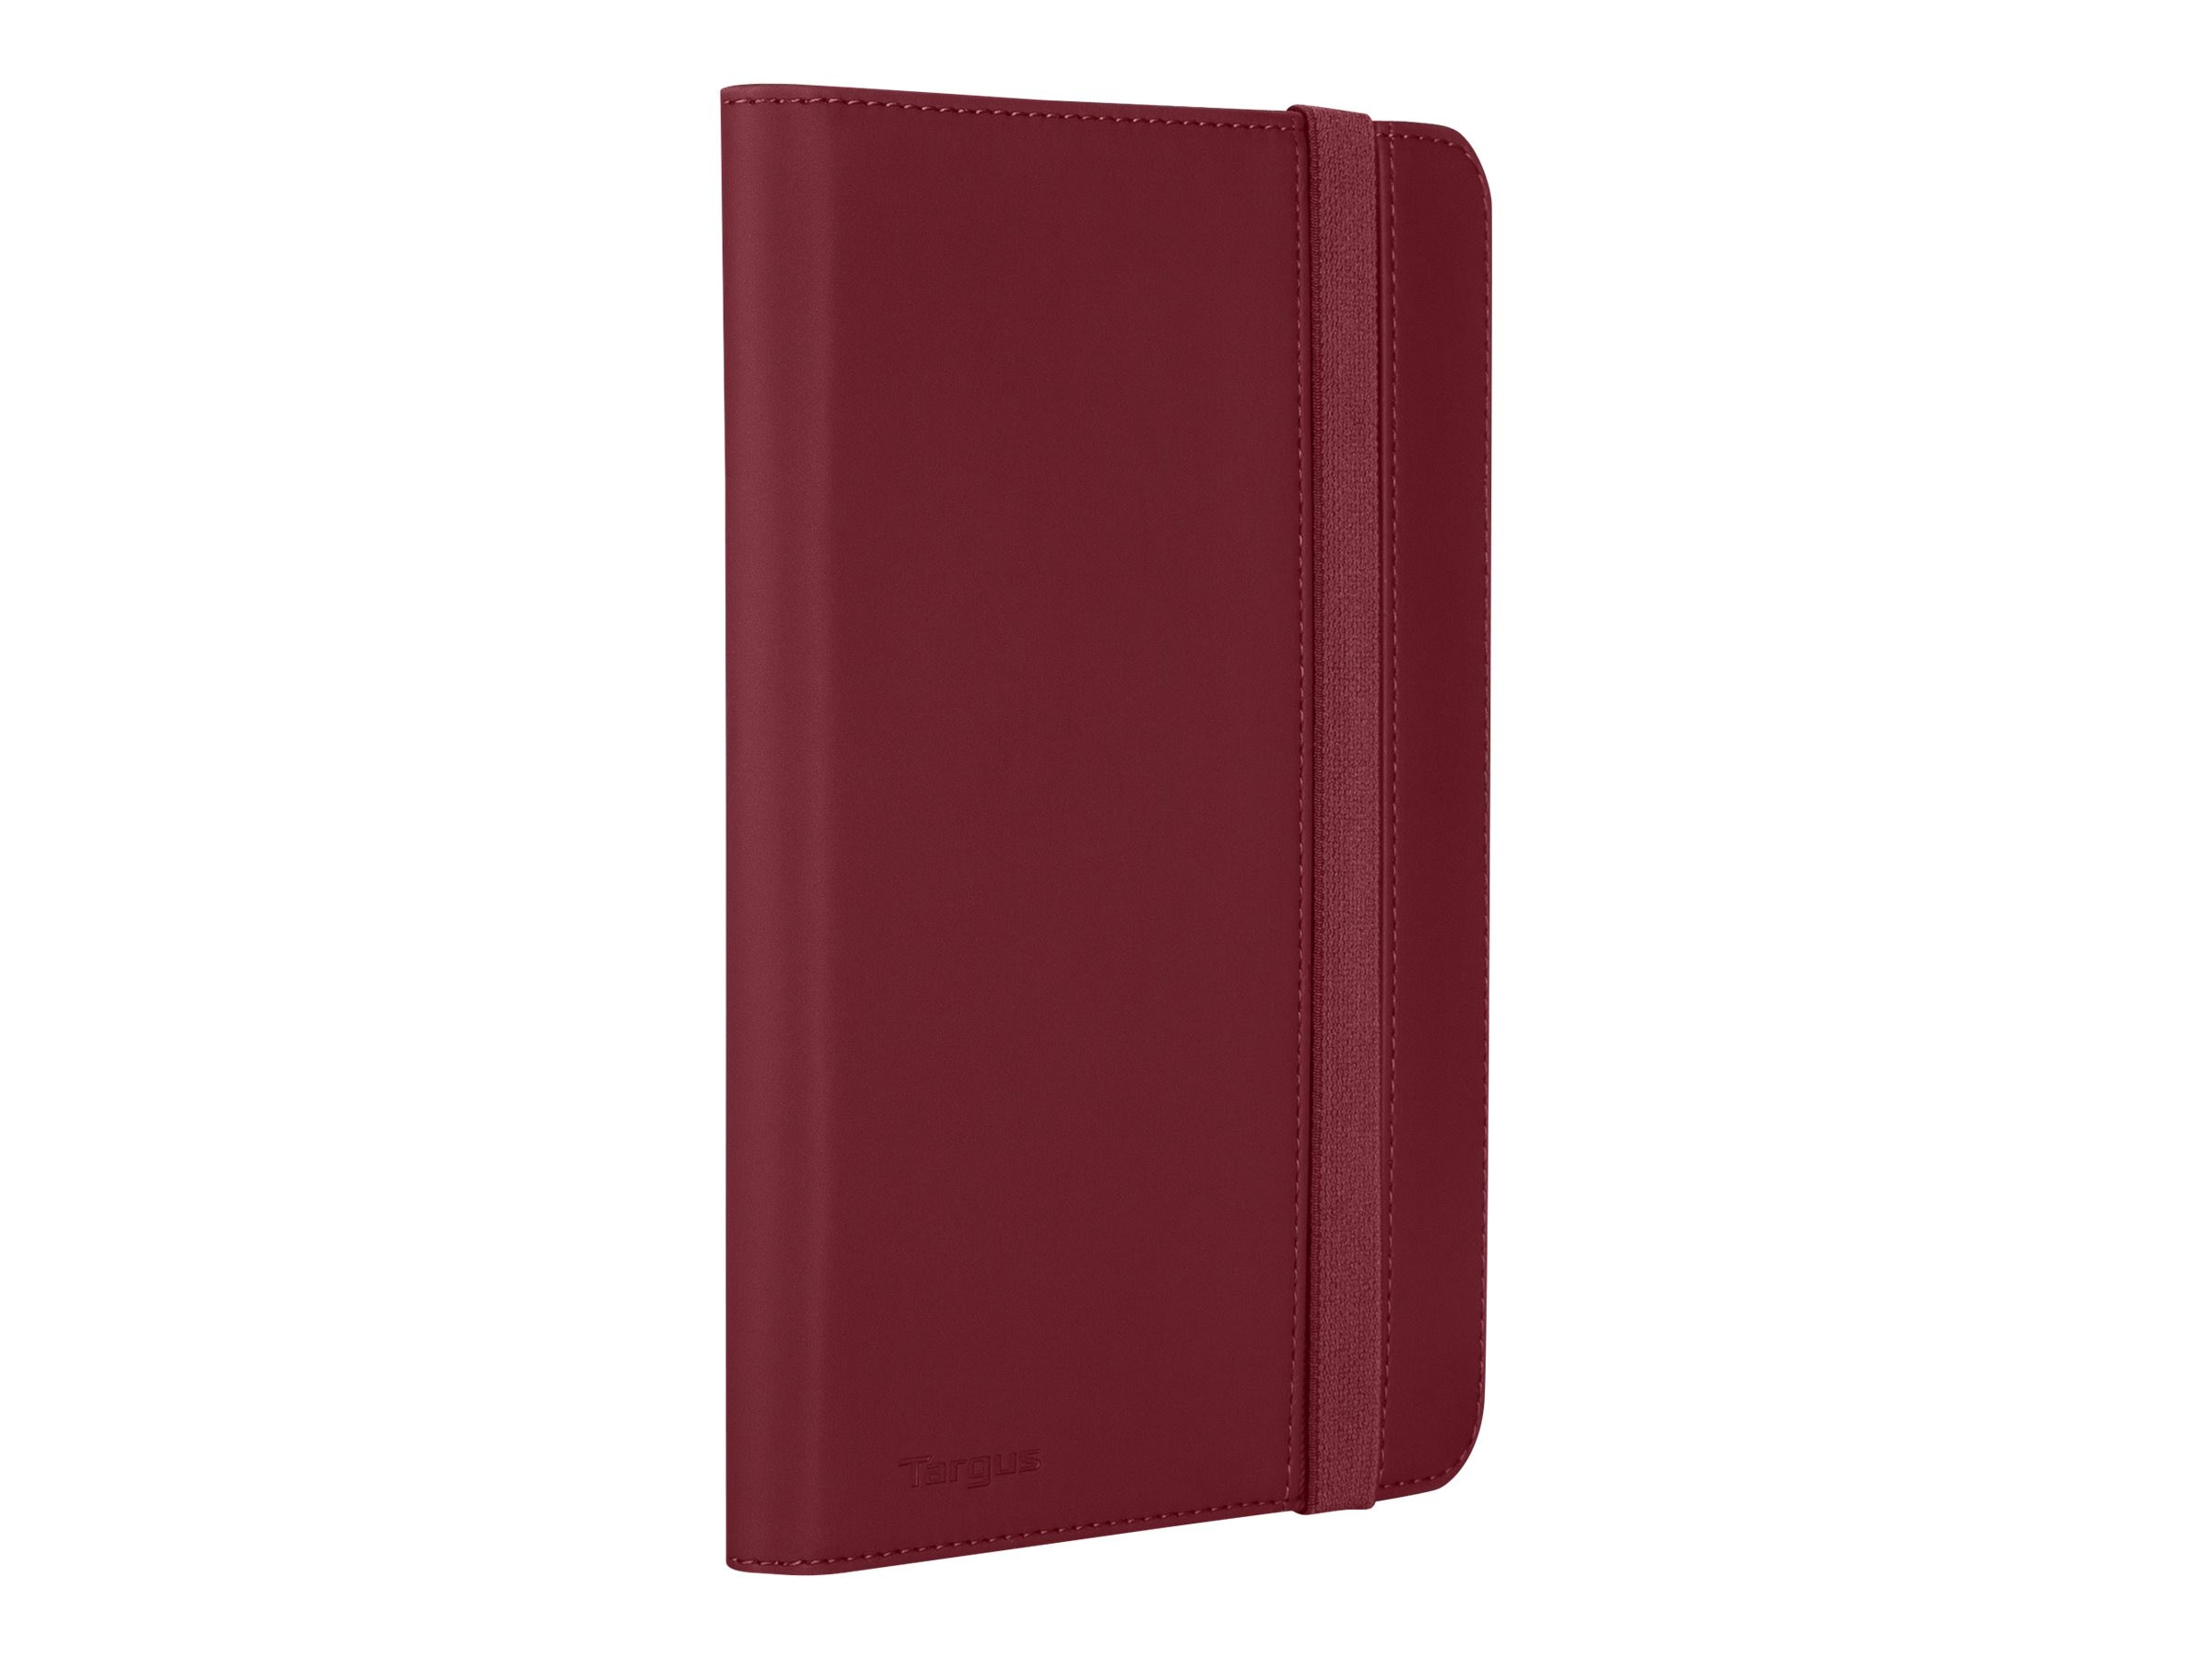 Targus Kickstand Case for Samsung Galaxy Note 8.0, Crimson Red